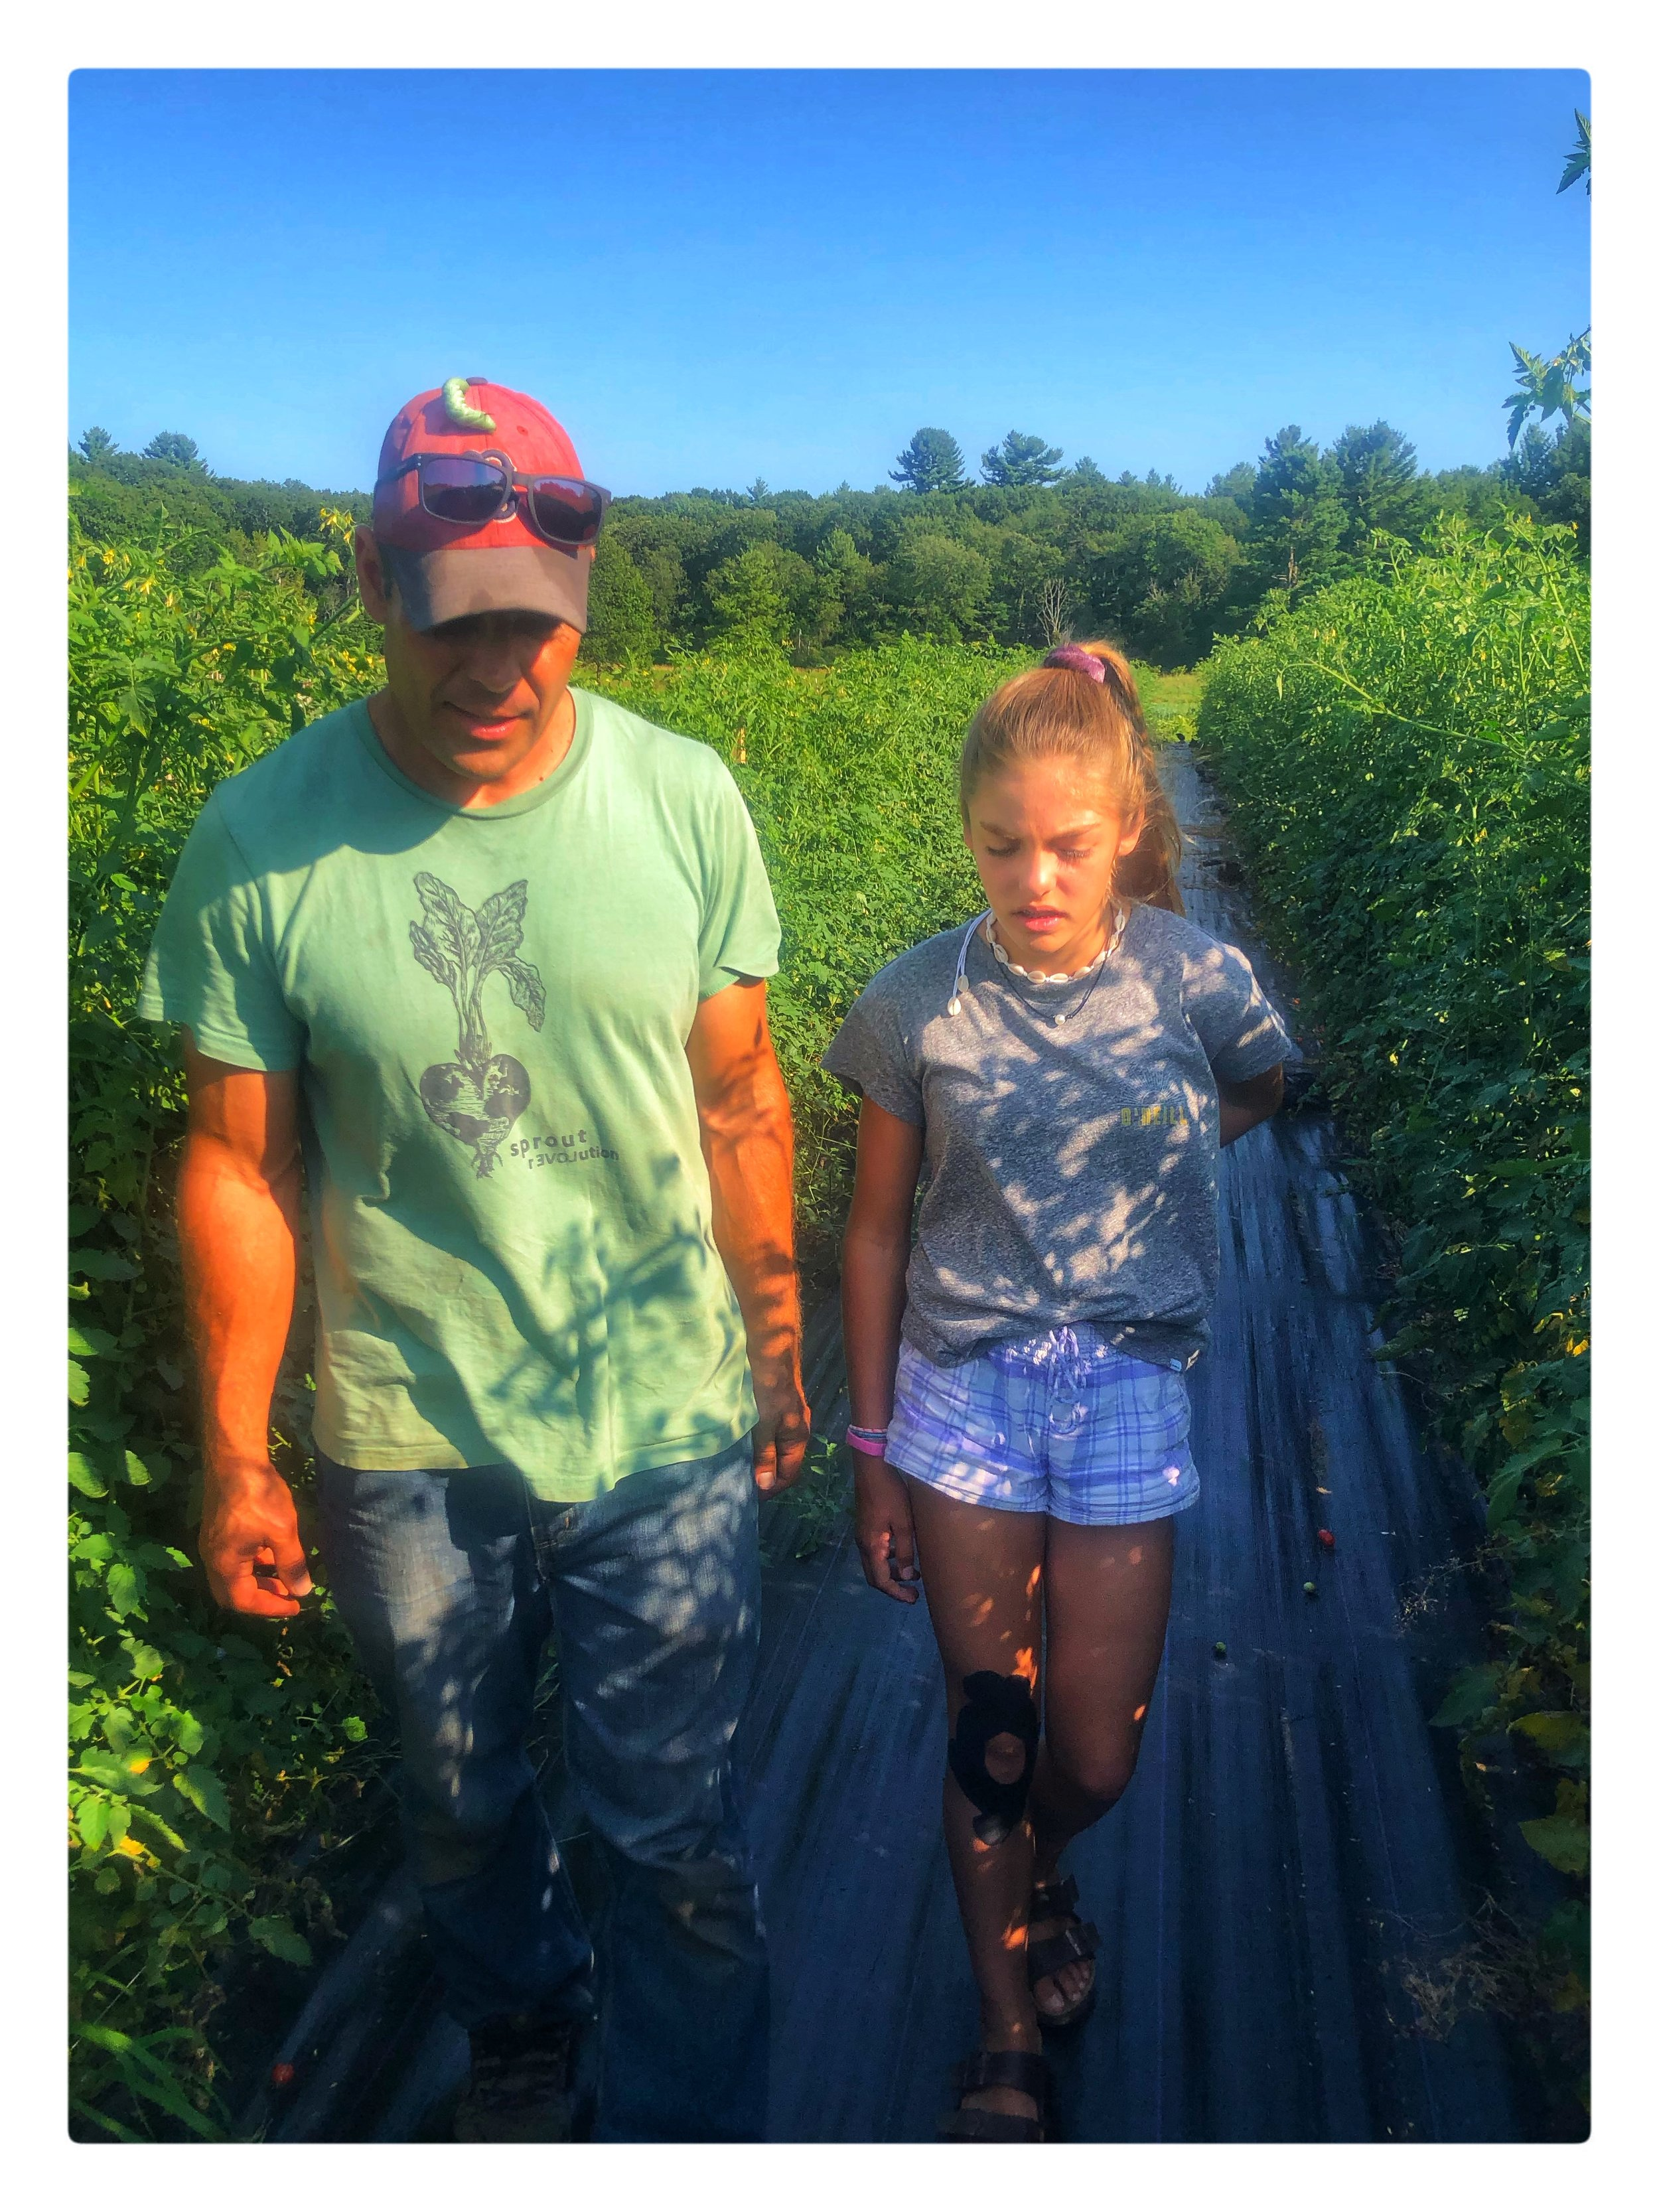 Andrew Rodgers and his daughter Phoebe, who works at Clark Farm Market, walk the fields of Clark Farm in Carlisle.